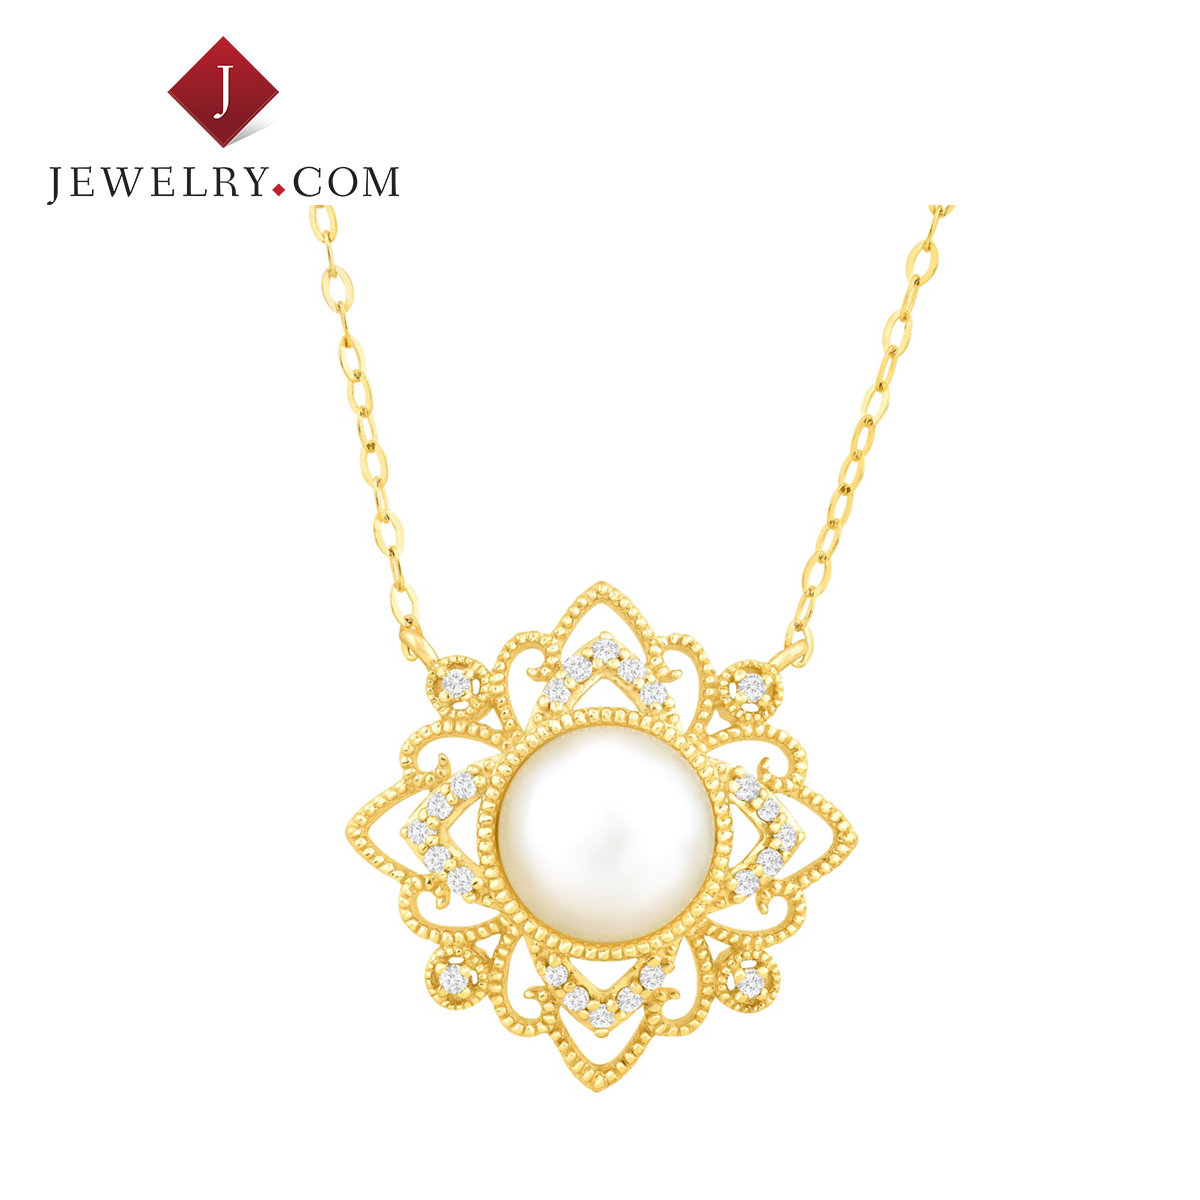 Jewelry.com official elegant atmosphere 0.1 karat k gold freshwater pearl diamond pendant woman with a necklace